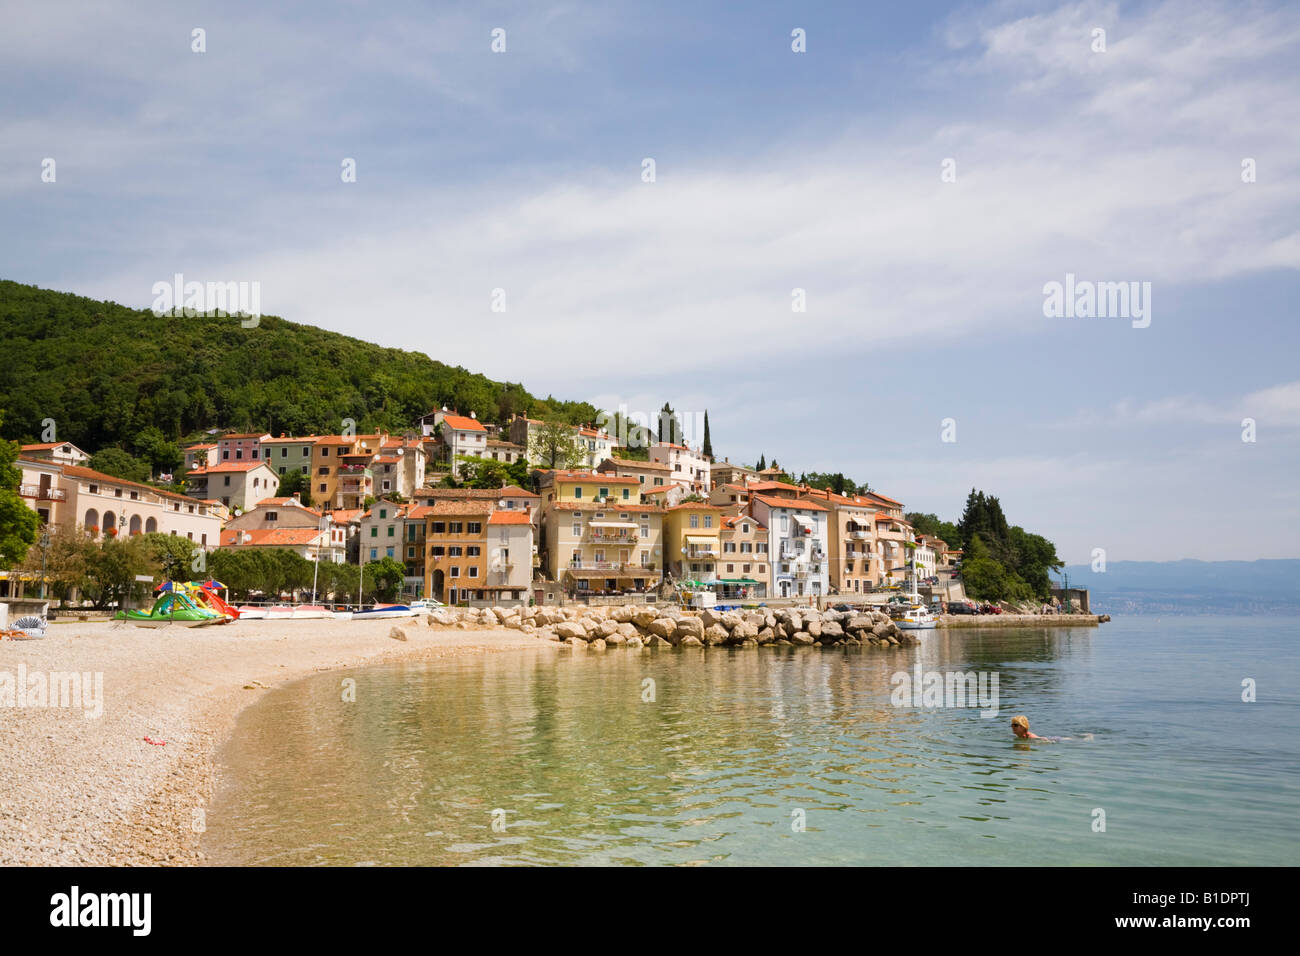 View along quiet beach to harbour and old town buildings on hillside in tourist resort. Moscenicka Draga Istria - Stock Image